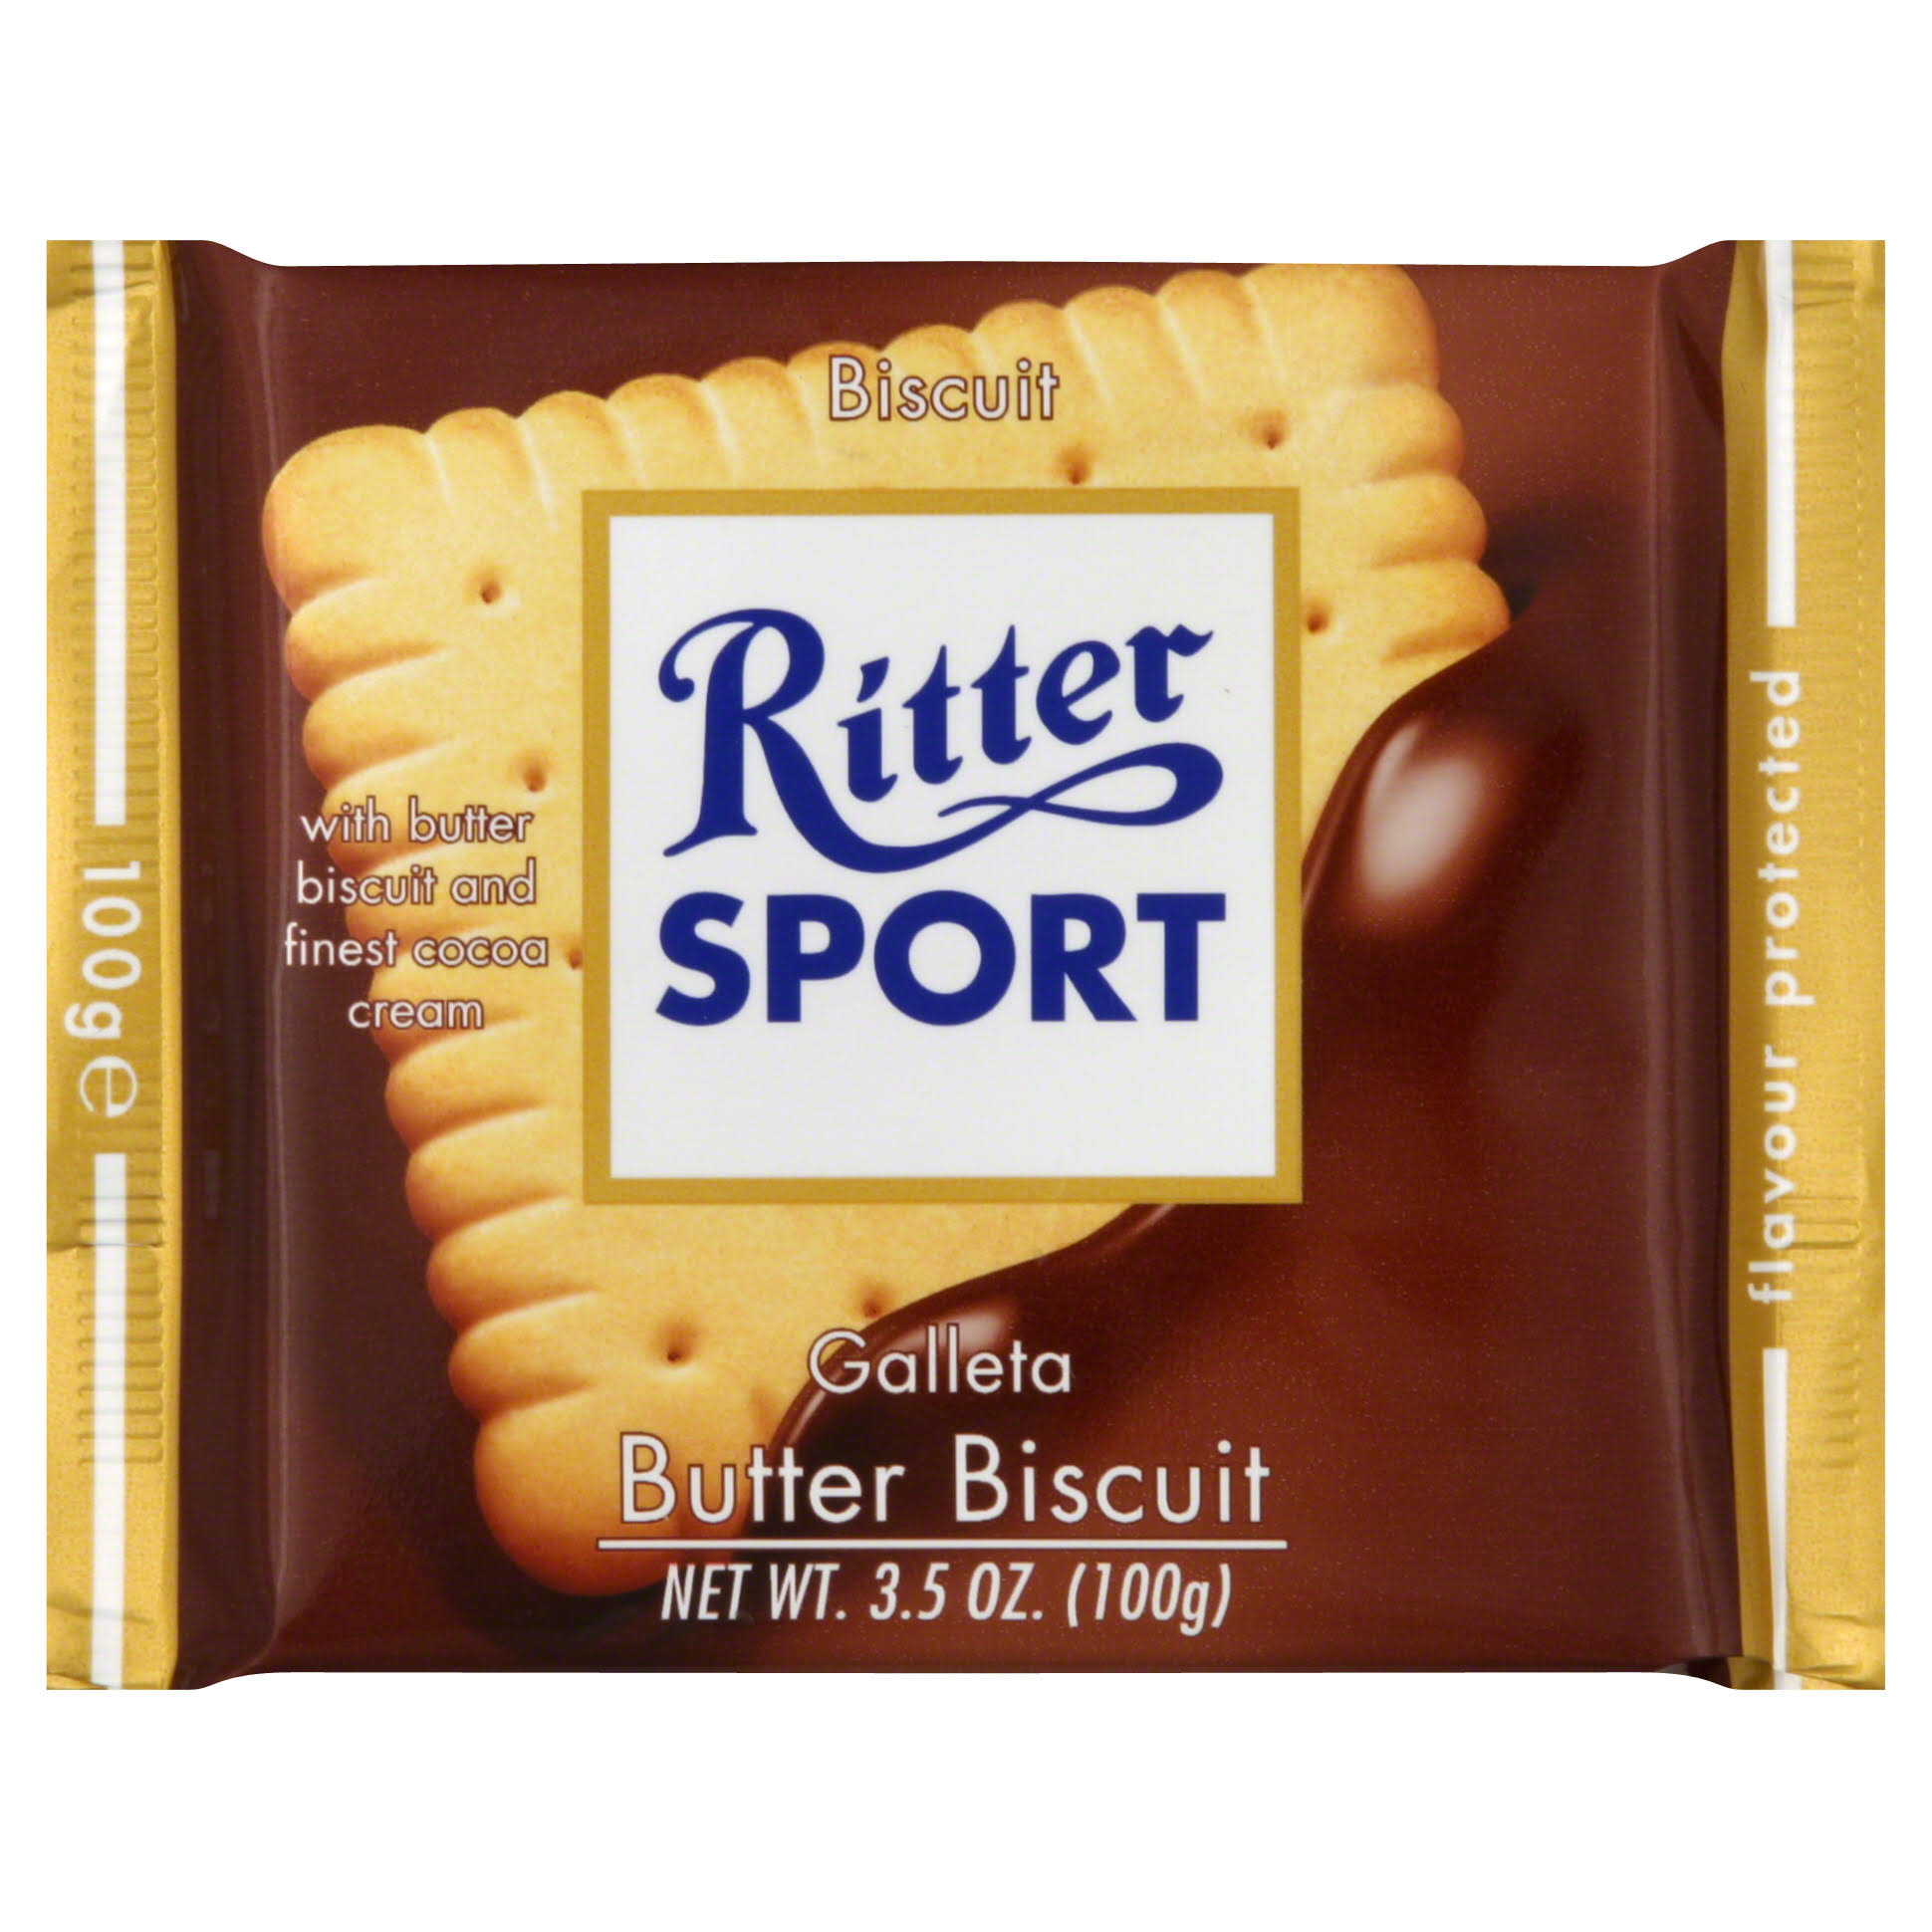 Ritter Sport Butter Biscuit - 3.5 oz